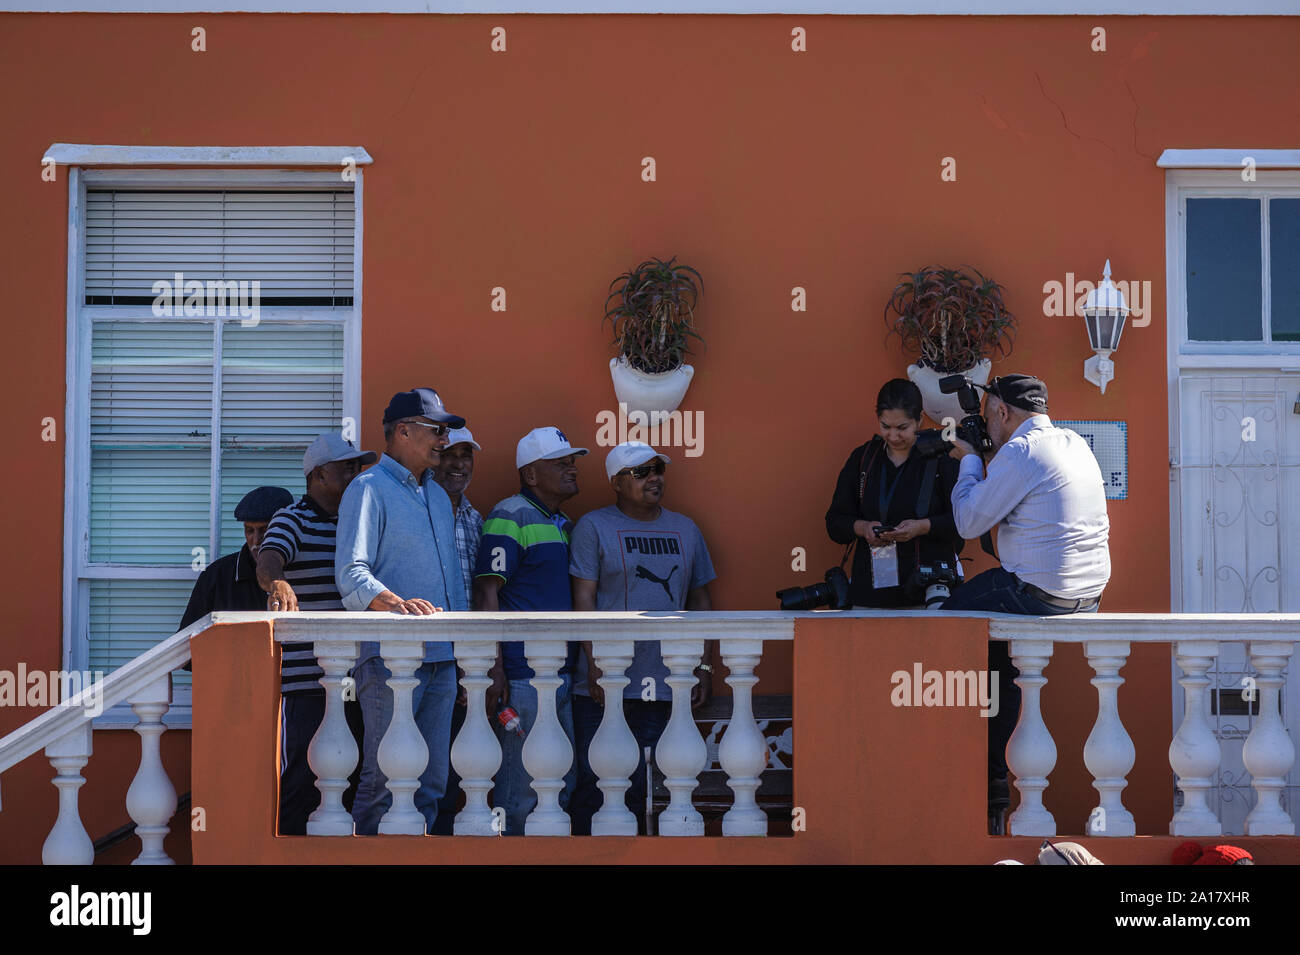 BoKaap residents turnout for Prince Harry and Meghan Markle visit to Cape Town's historical muslim and slave quarter in South Africa Stock Photo